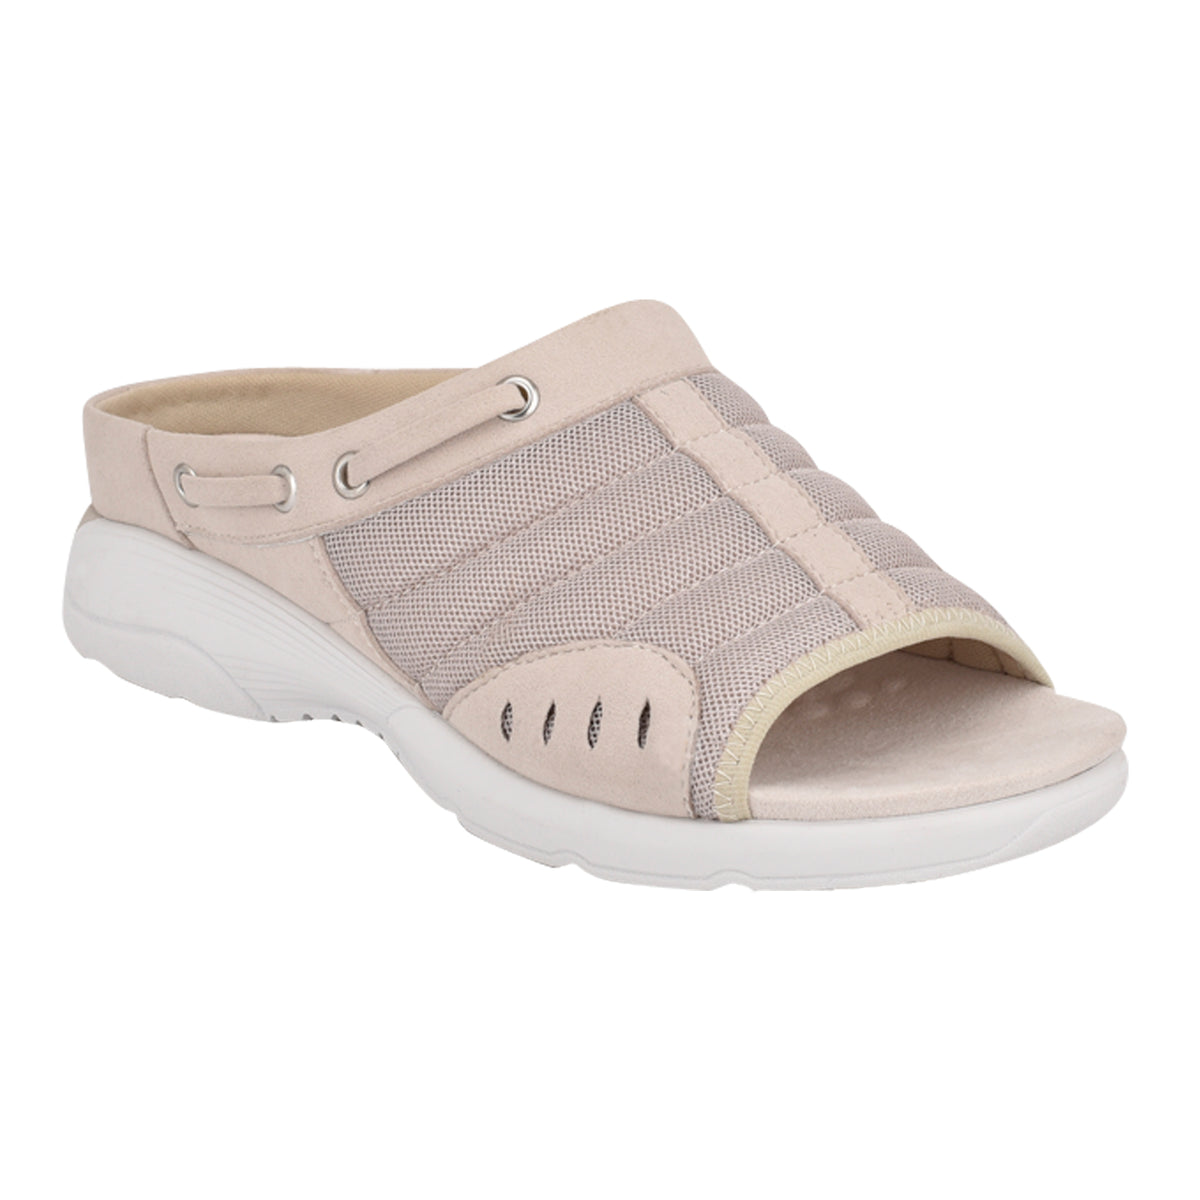 terra-slip-on-sandals-in-taupe-multi-suede